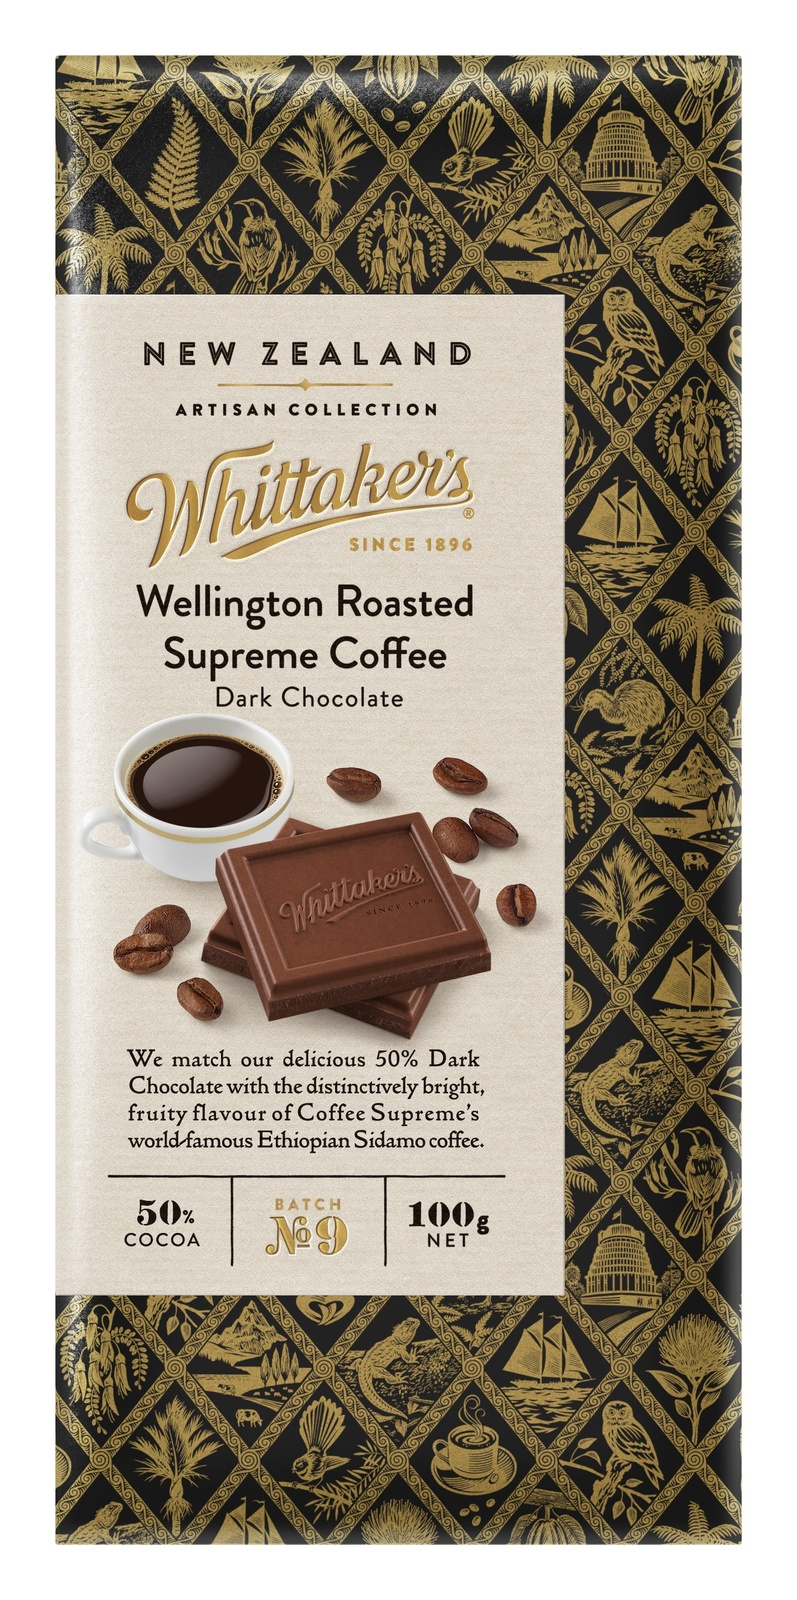 Whittaker's: Artisan Collection - Wellington Roasted Supreme Coffee (100g) image